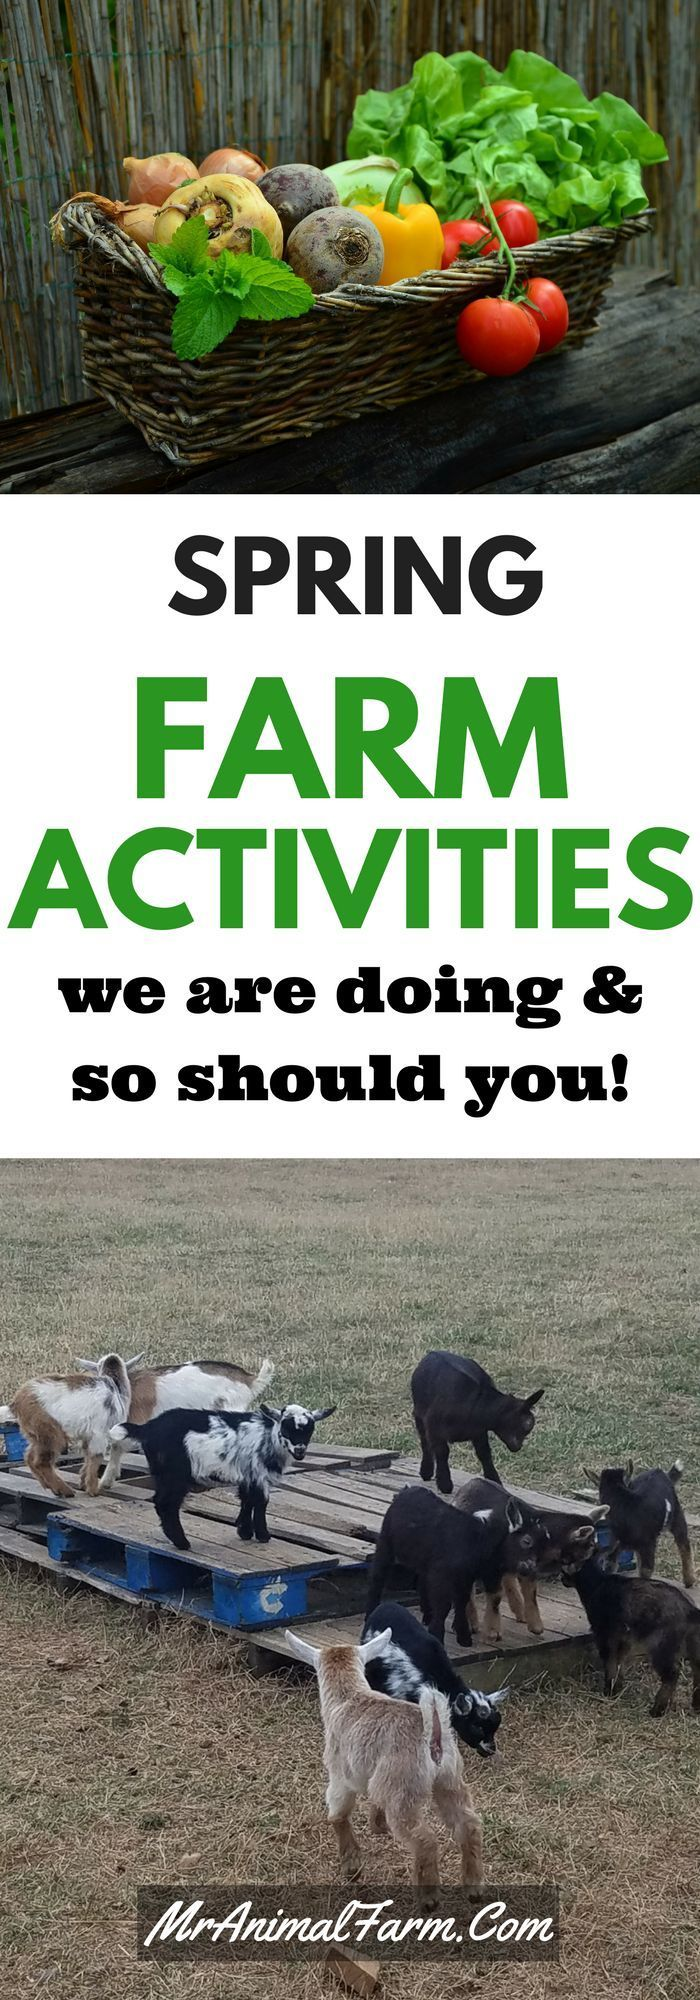 Spring is always a busy time of year on the farm. Check out these must do Spring Farm activities.